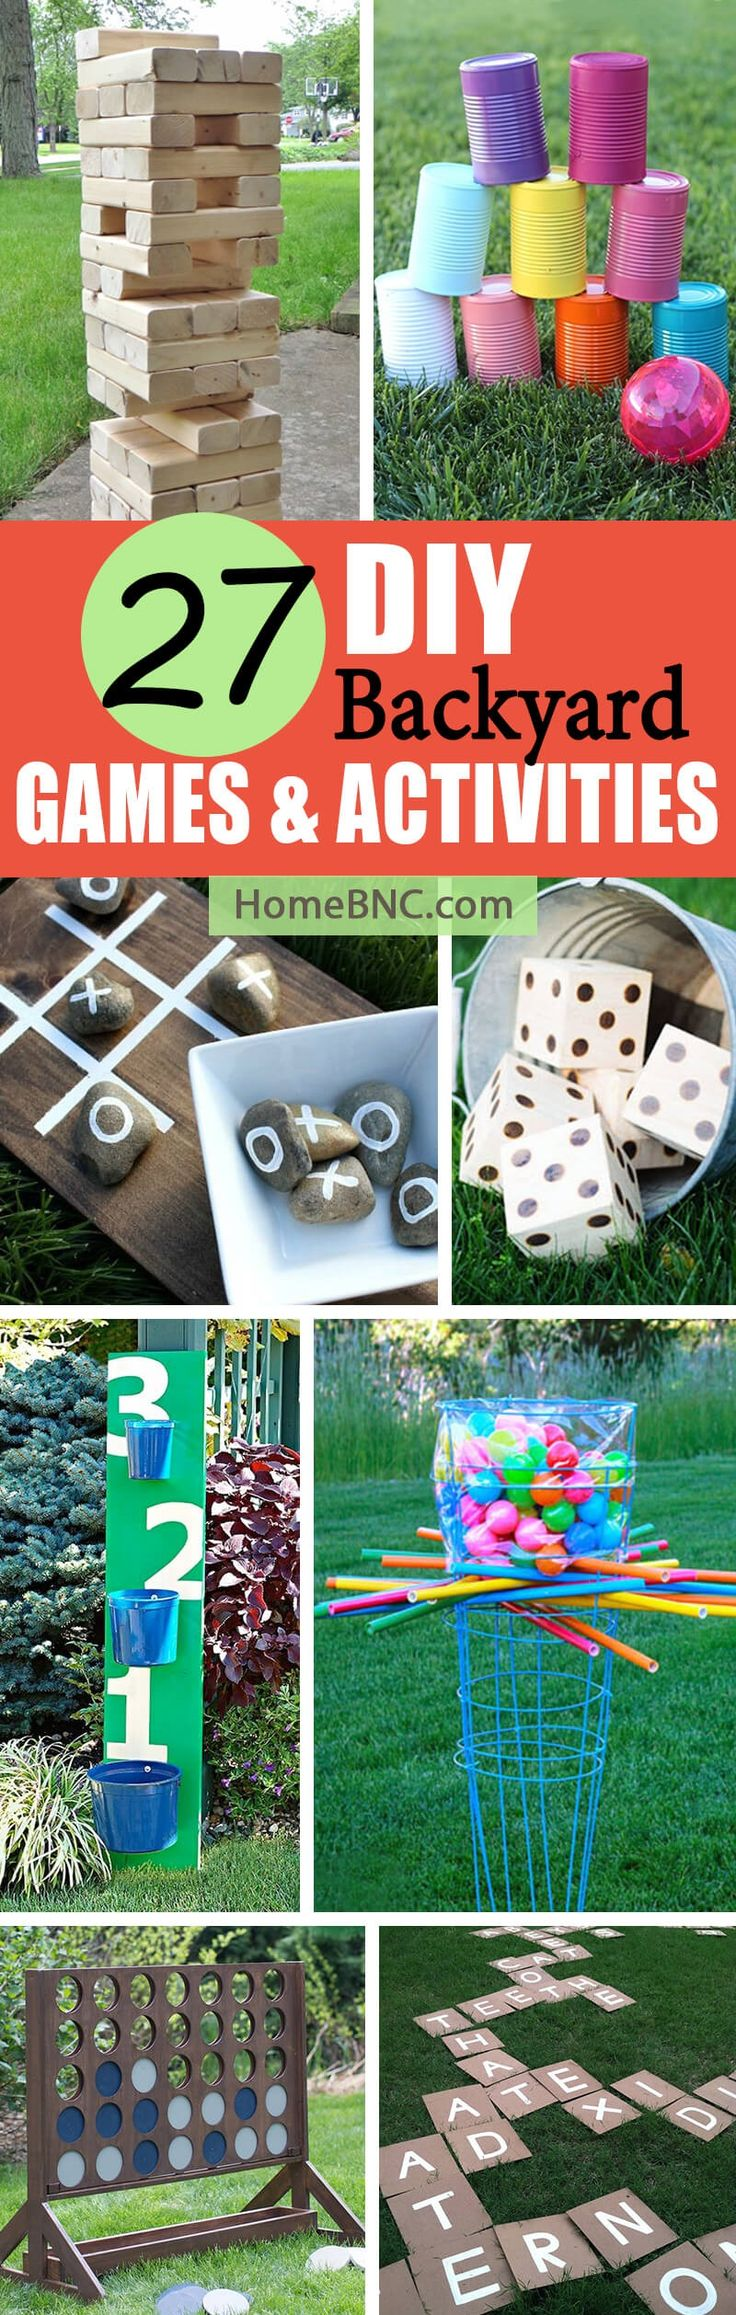 Summer is the perfect time to spend time in the great outdoors, and if you're looking for ways to entertain your friends and family, these 27 DIY backyard game ideas are a great place to start. 27 Fun DIY Backyard Game Ideas Your Kids Will Love   Outdoor DIY games can be as simple or co...